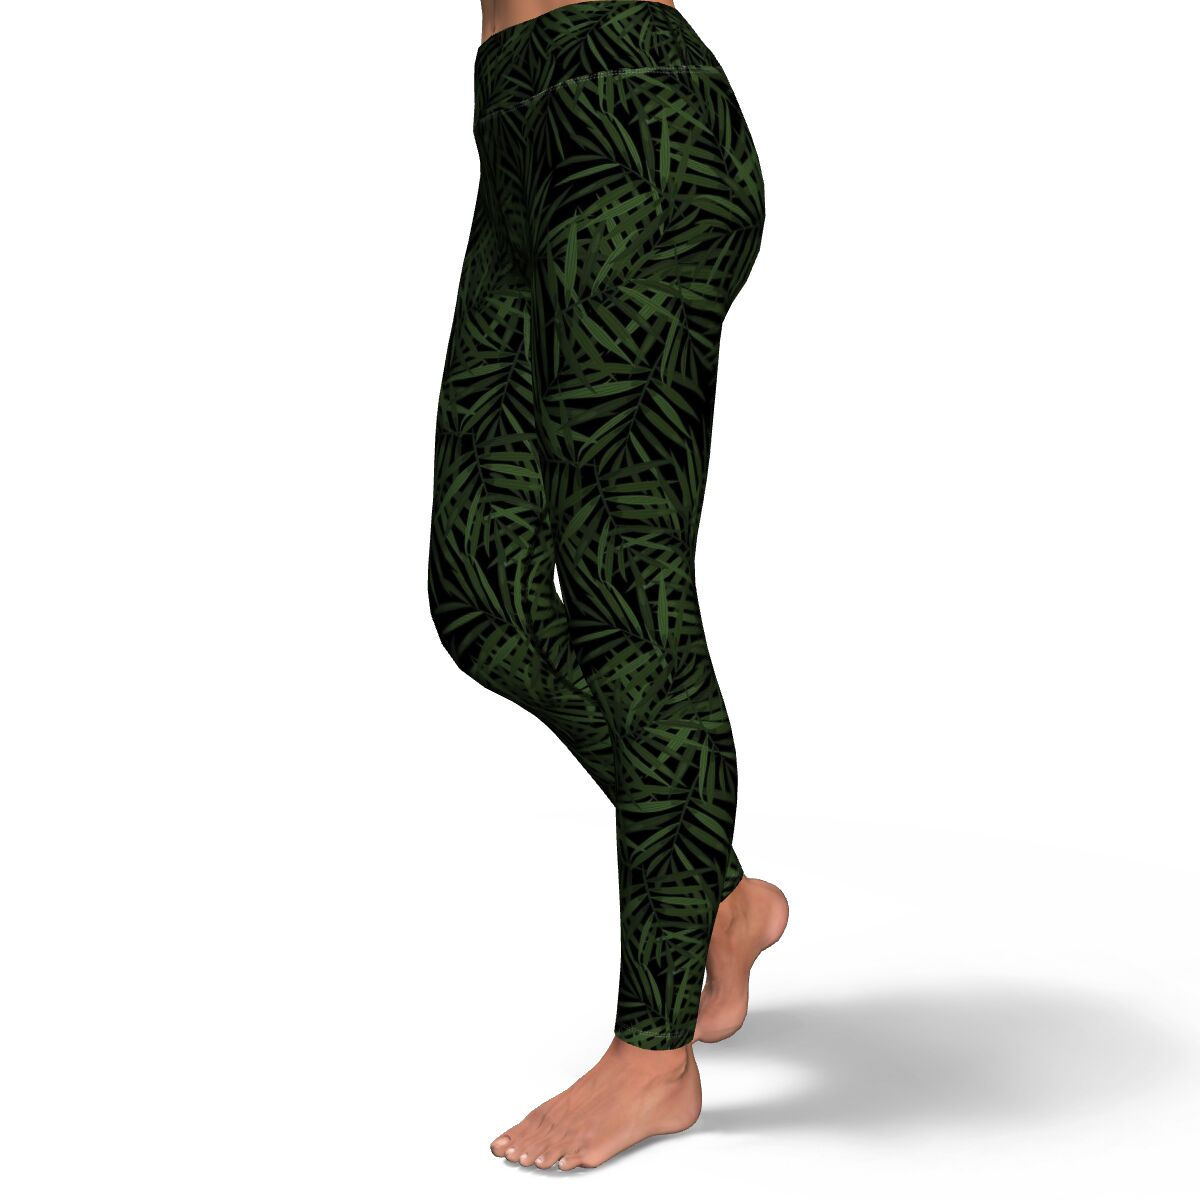 Palm Leaf Print Yoga Pants